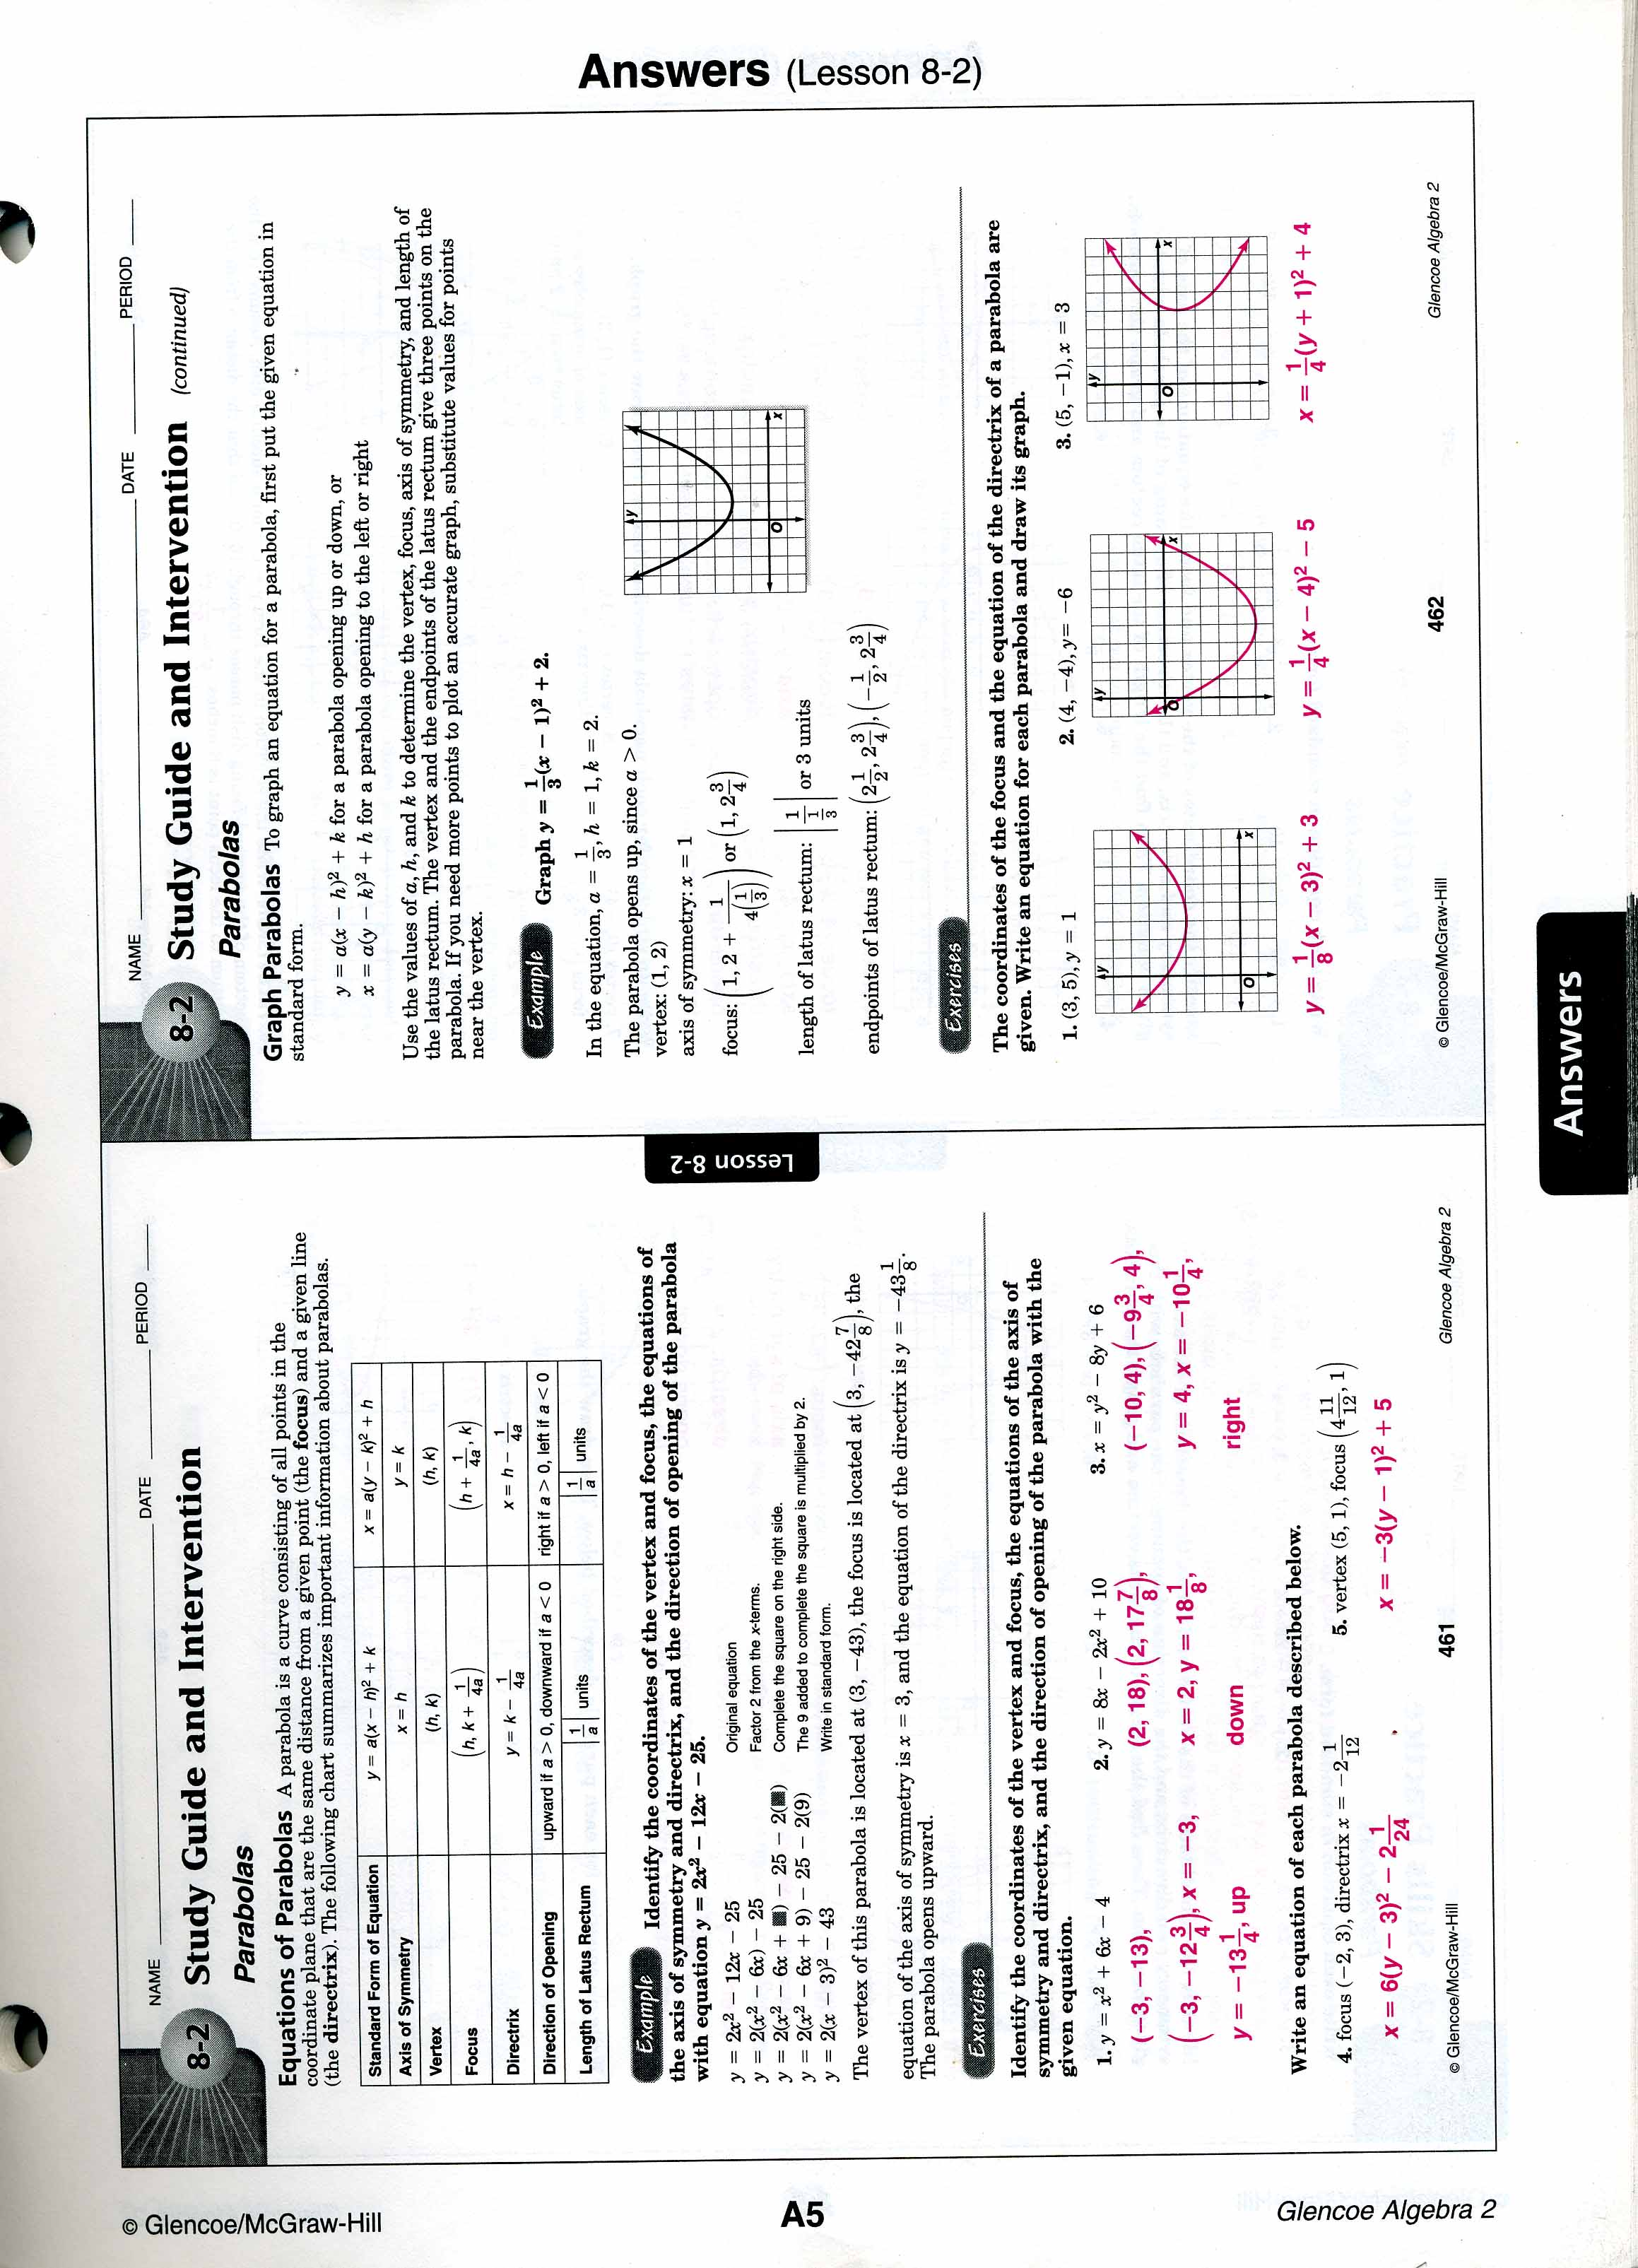 Printables Algebra 2 Worksheets With Answer Key mrscabral algebra 2 worksheet answers worksheets 8 2